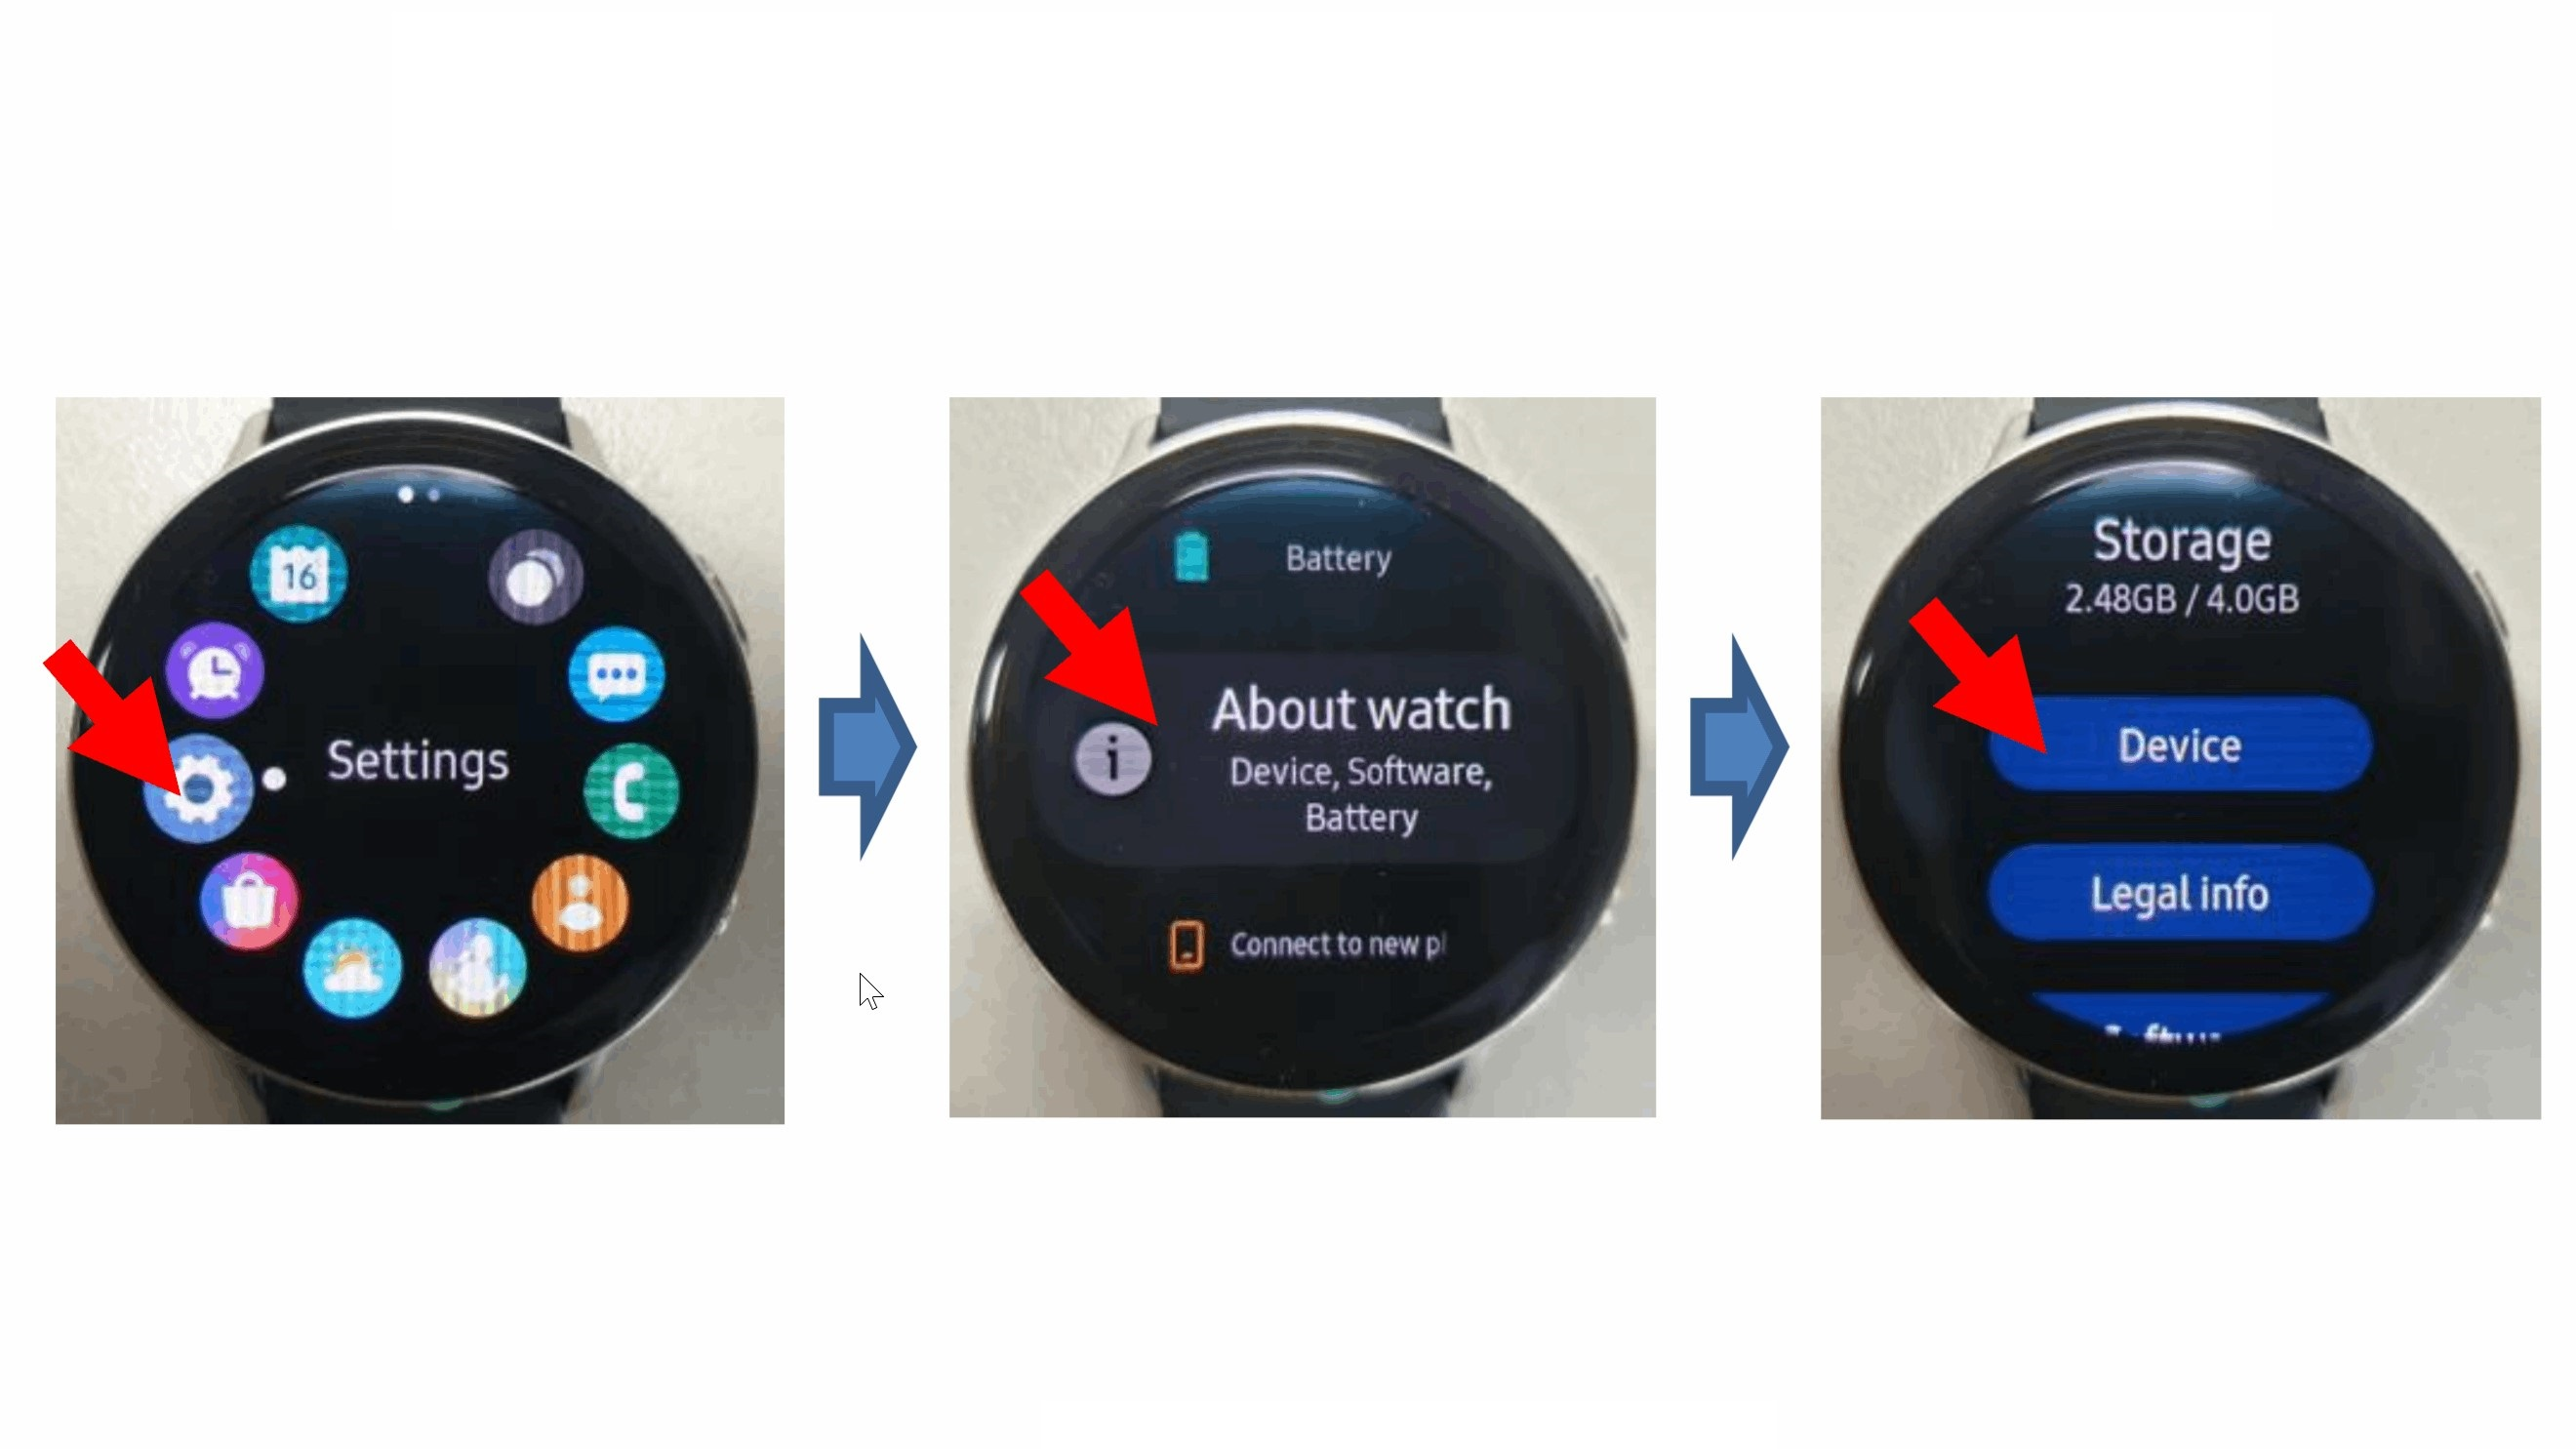 Samsung Galaxy Watch Active 2 images published in FCC filing